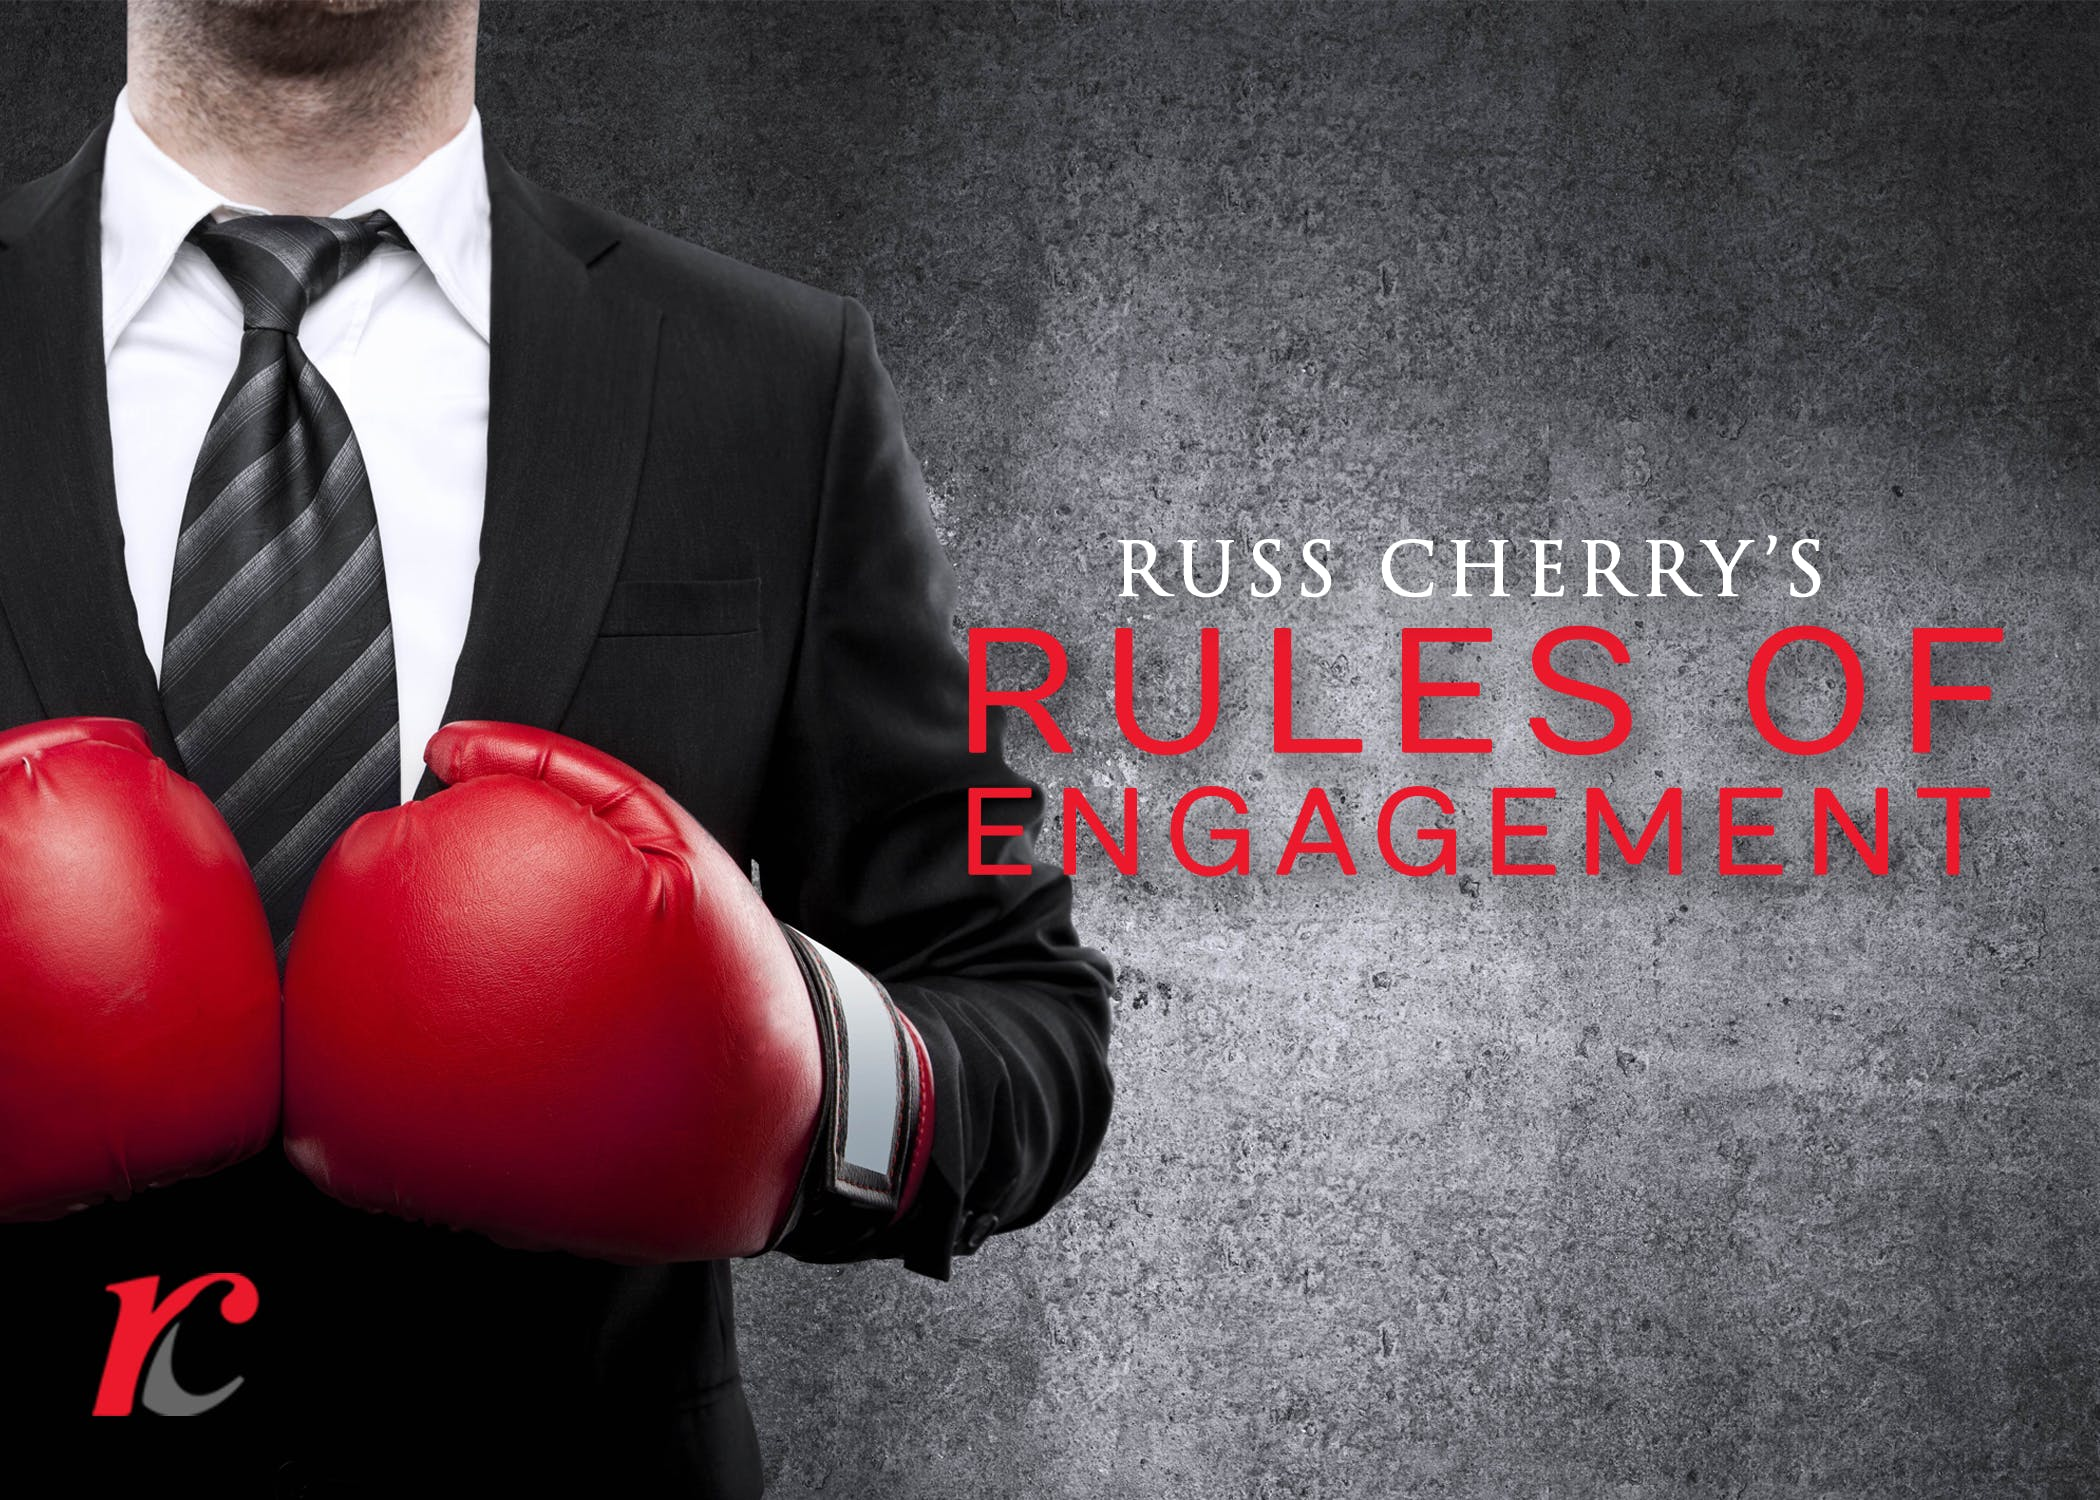 russ cherrys rules of engagement - Hilton Garden Inn Billings